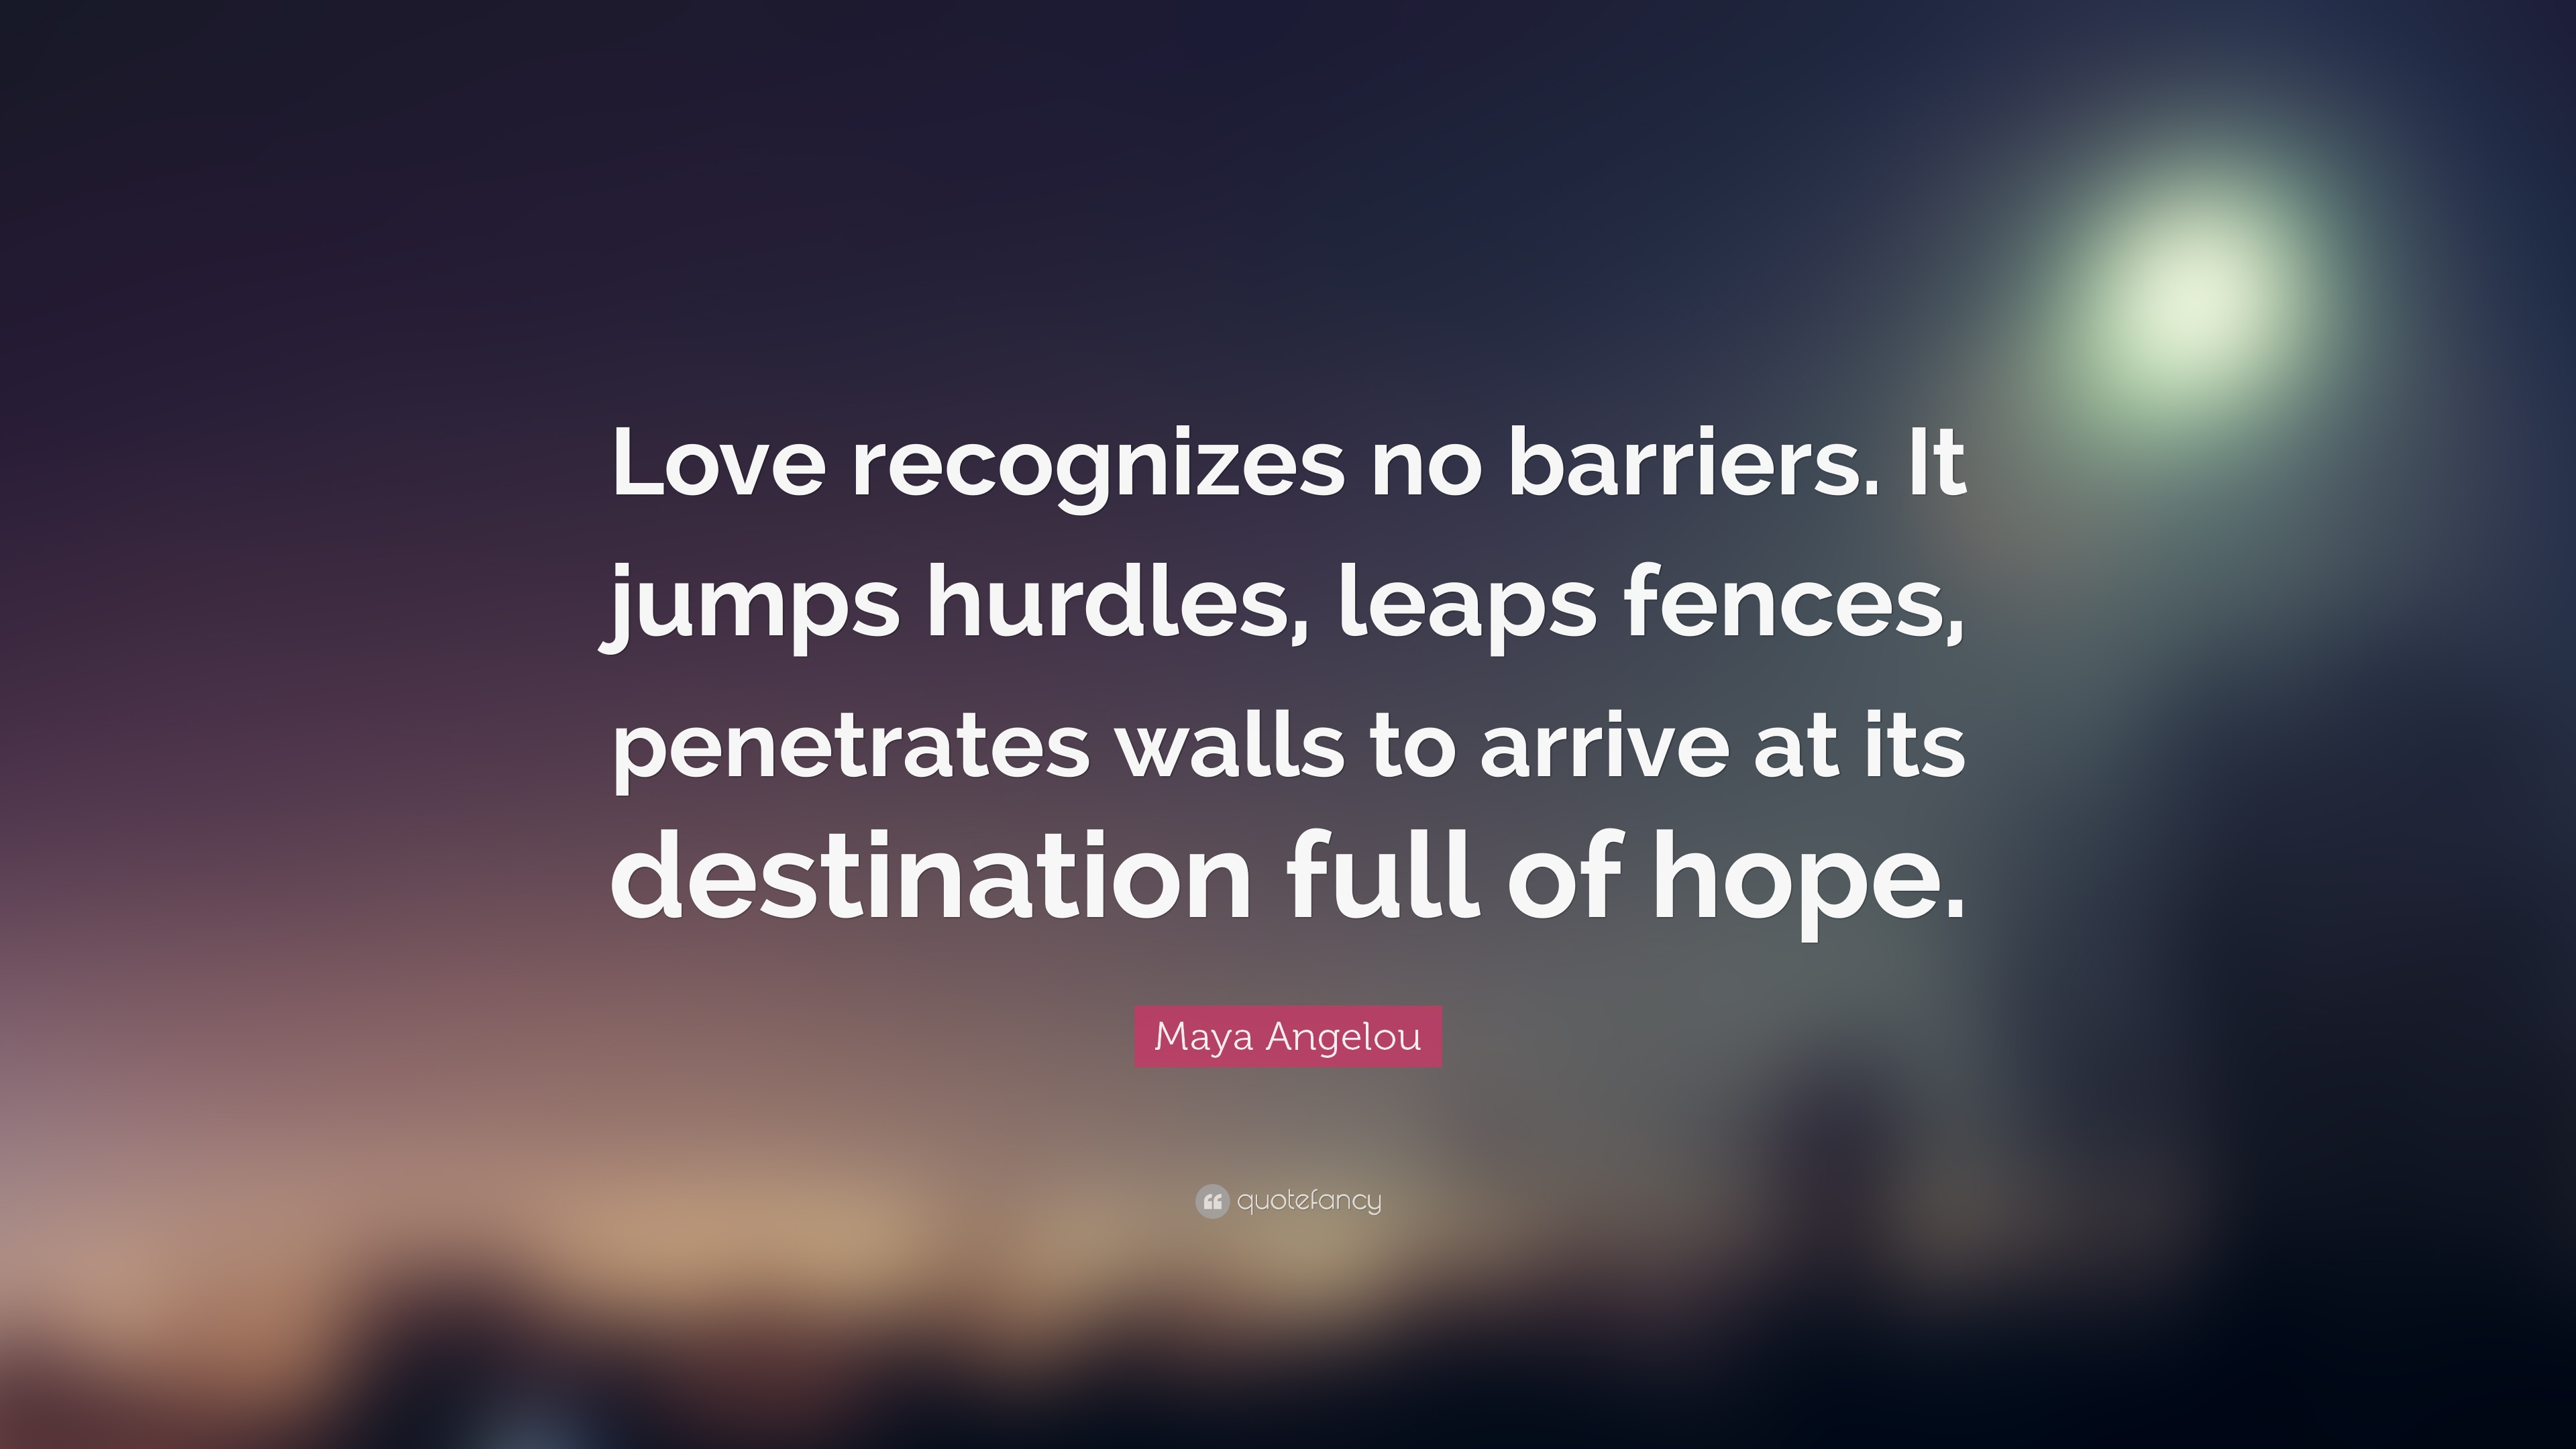 Beautiful Sad Quotes Wallpaper Maya Angelou Quote Love Recognizes No Barriers It Jumps